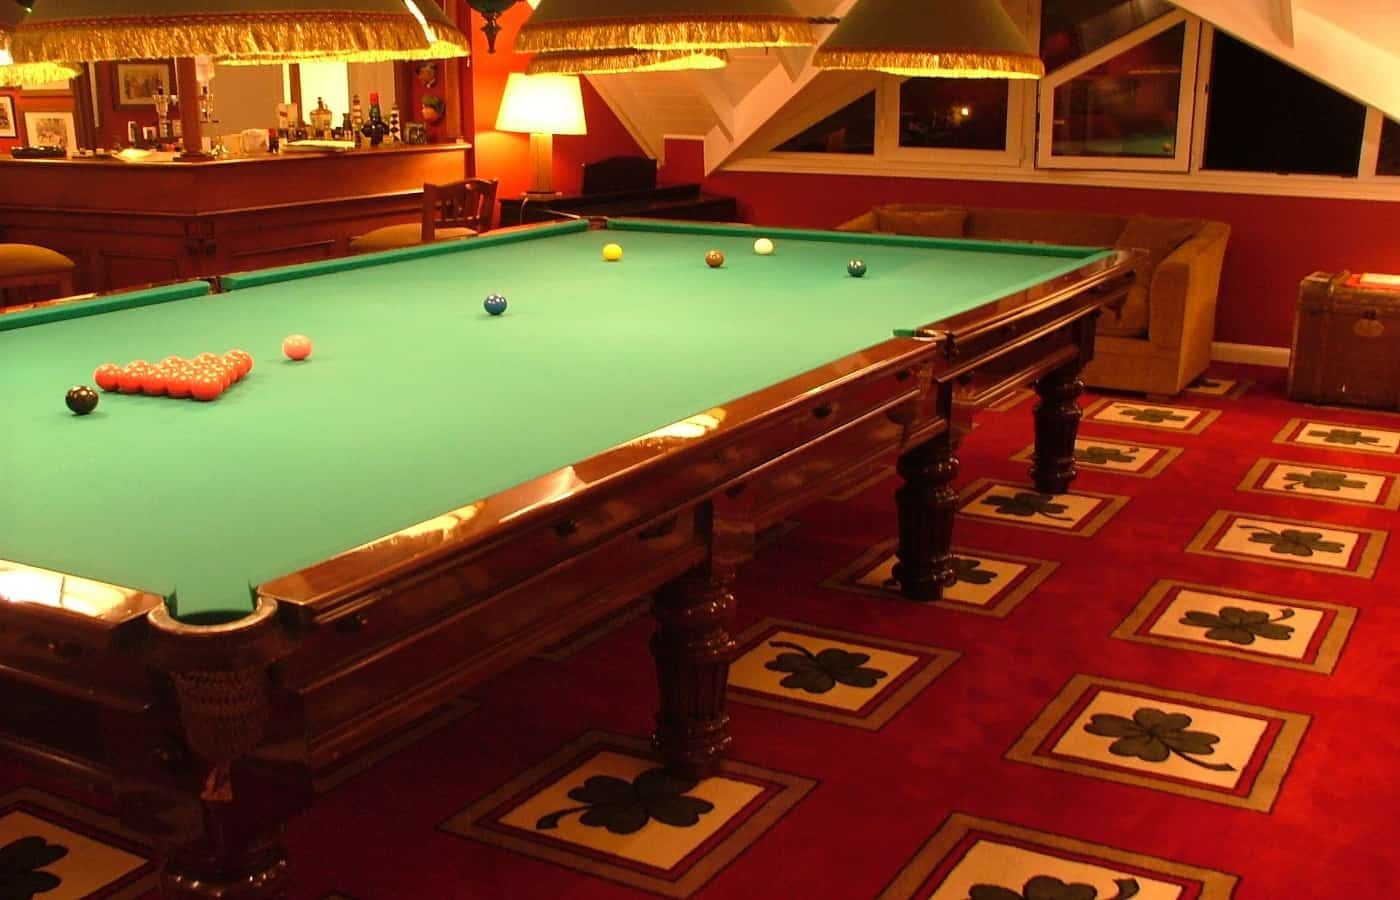 Is Snooker More Difficult Than Pool